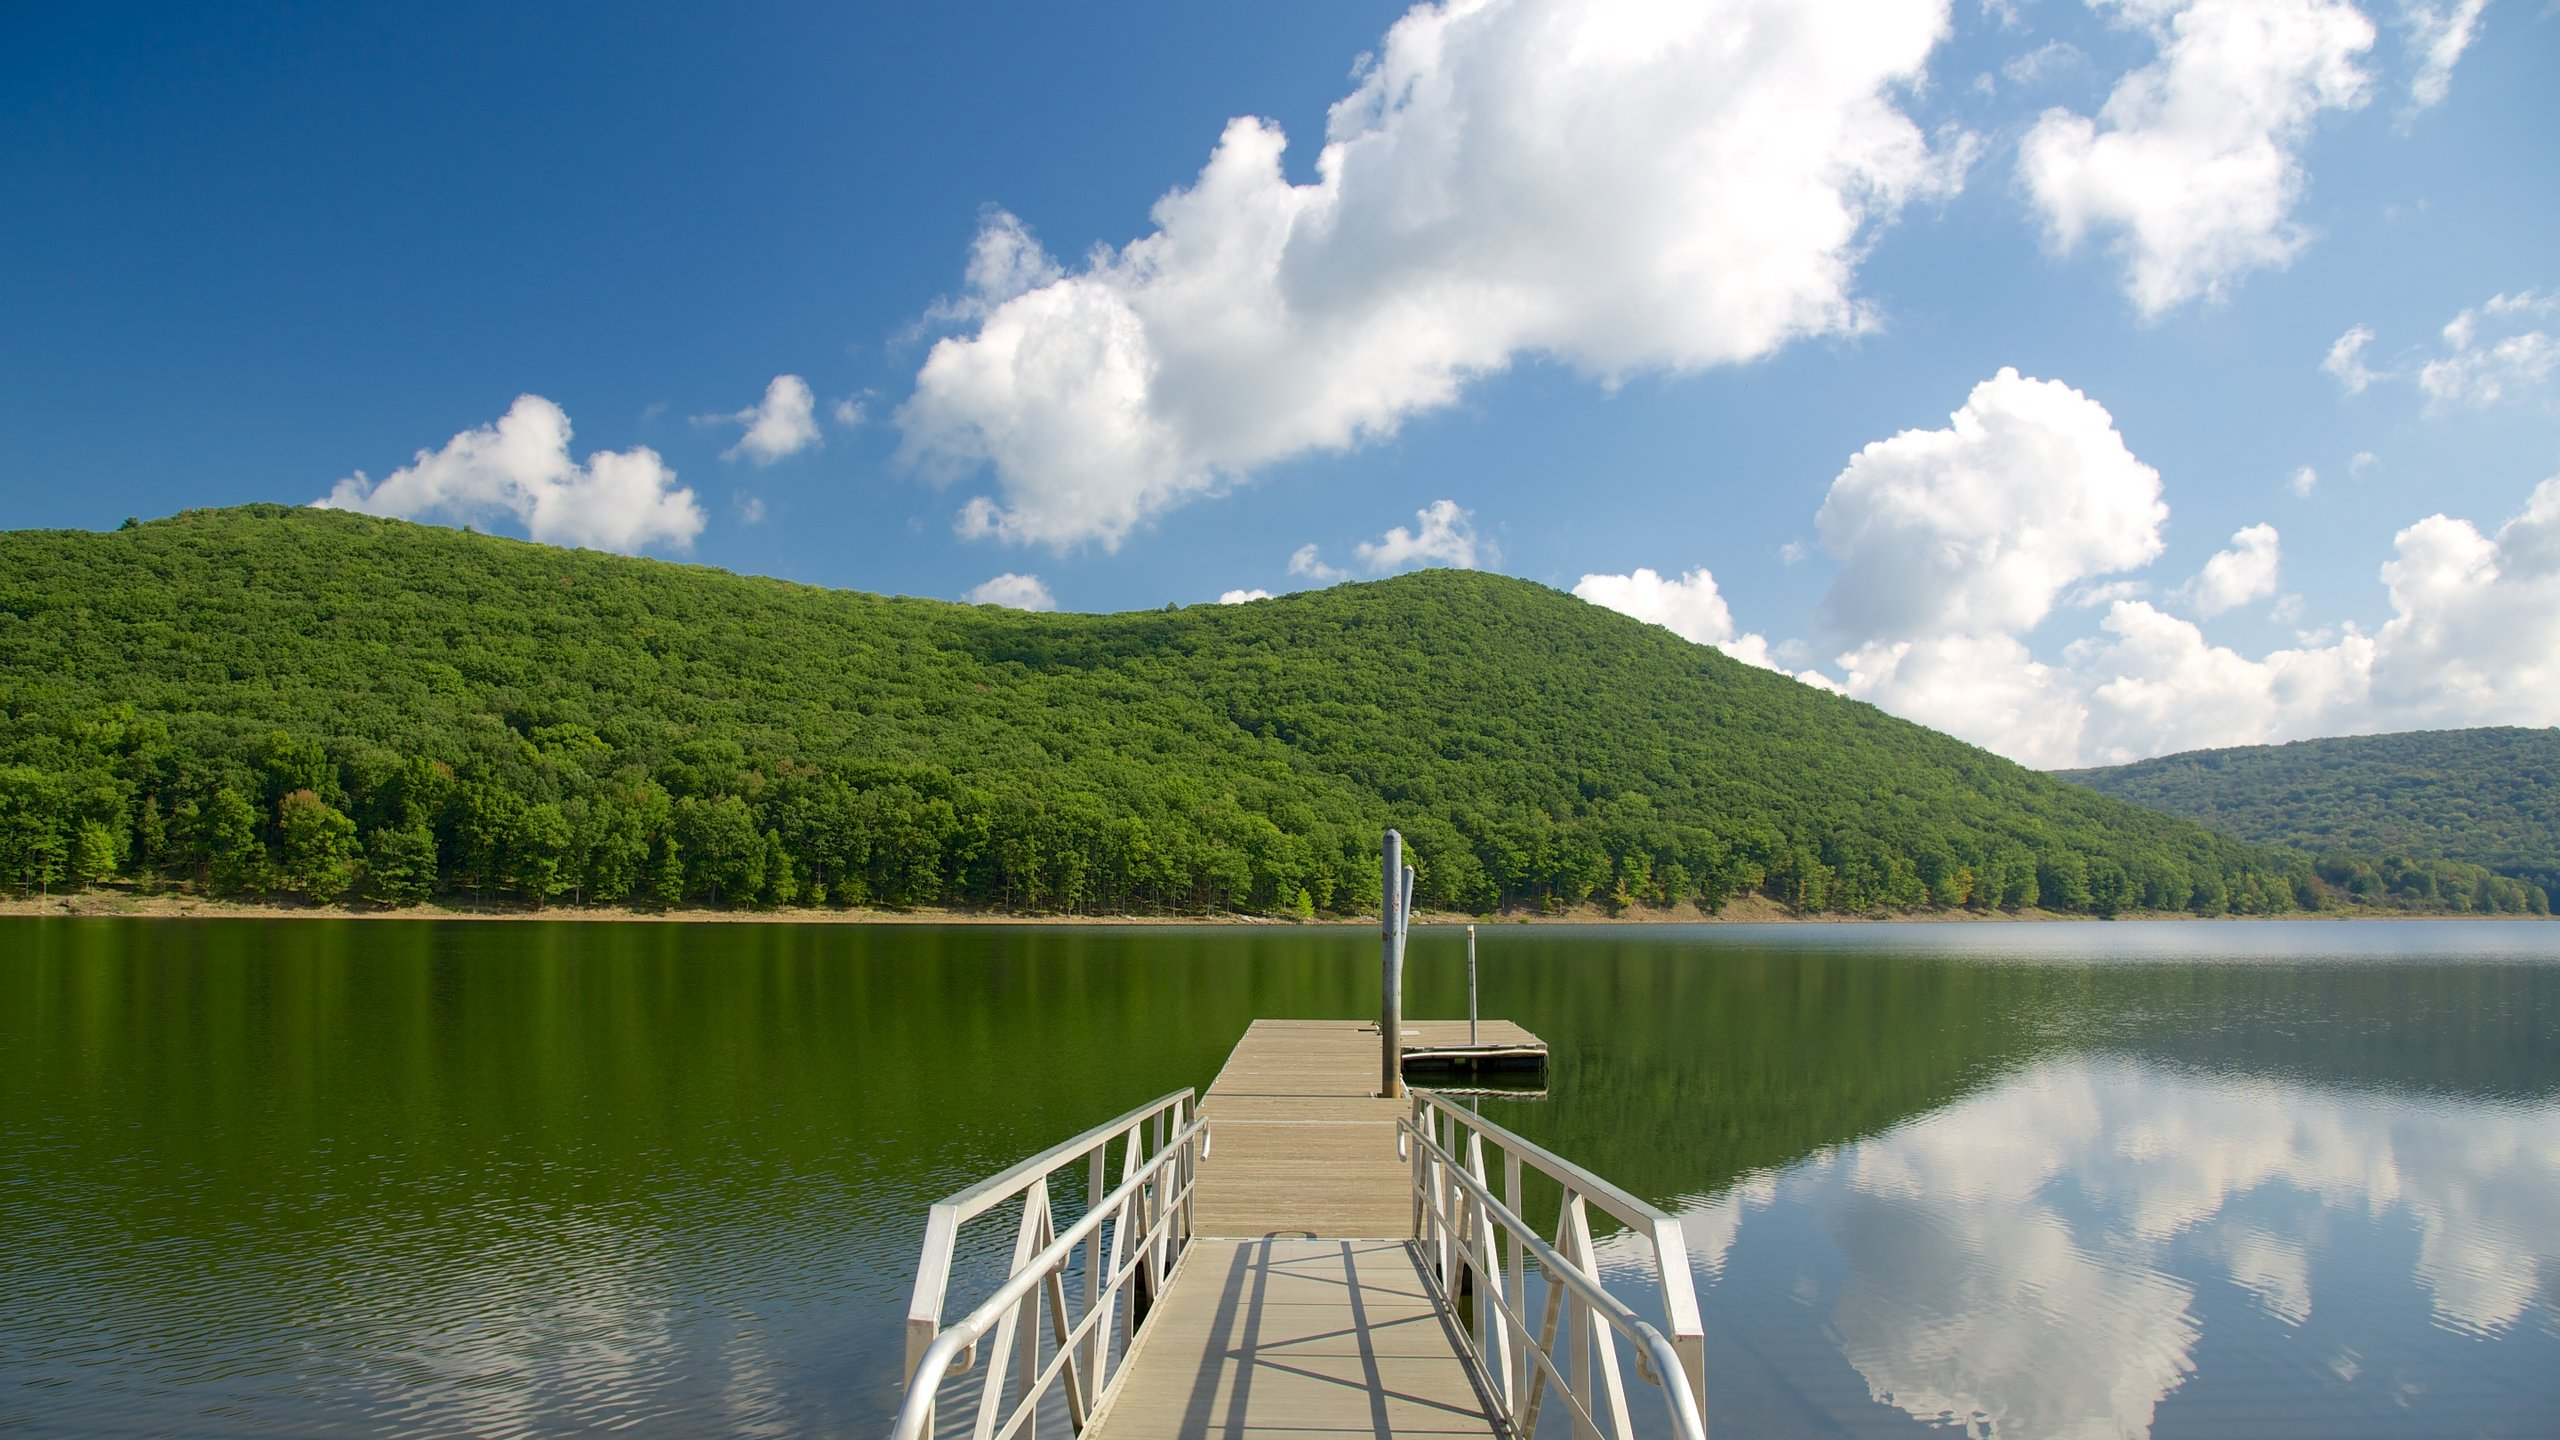 Allegheny National Forest, Pennsylvania, United States of America